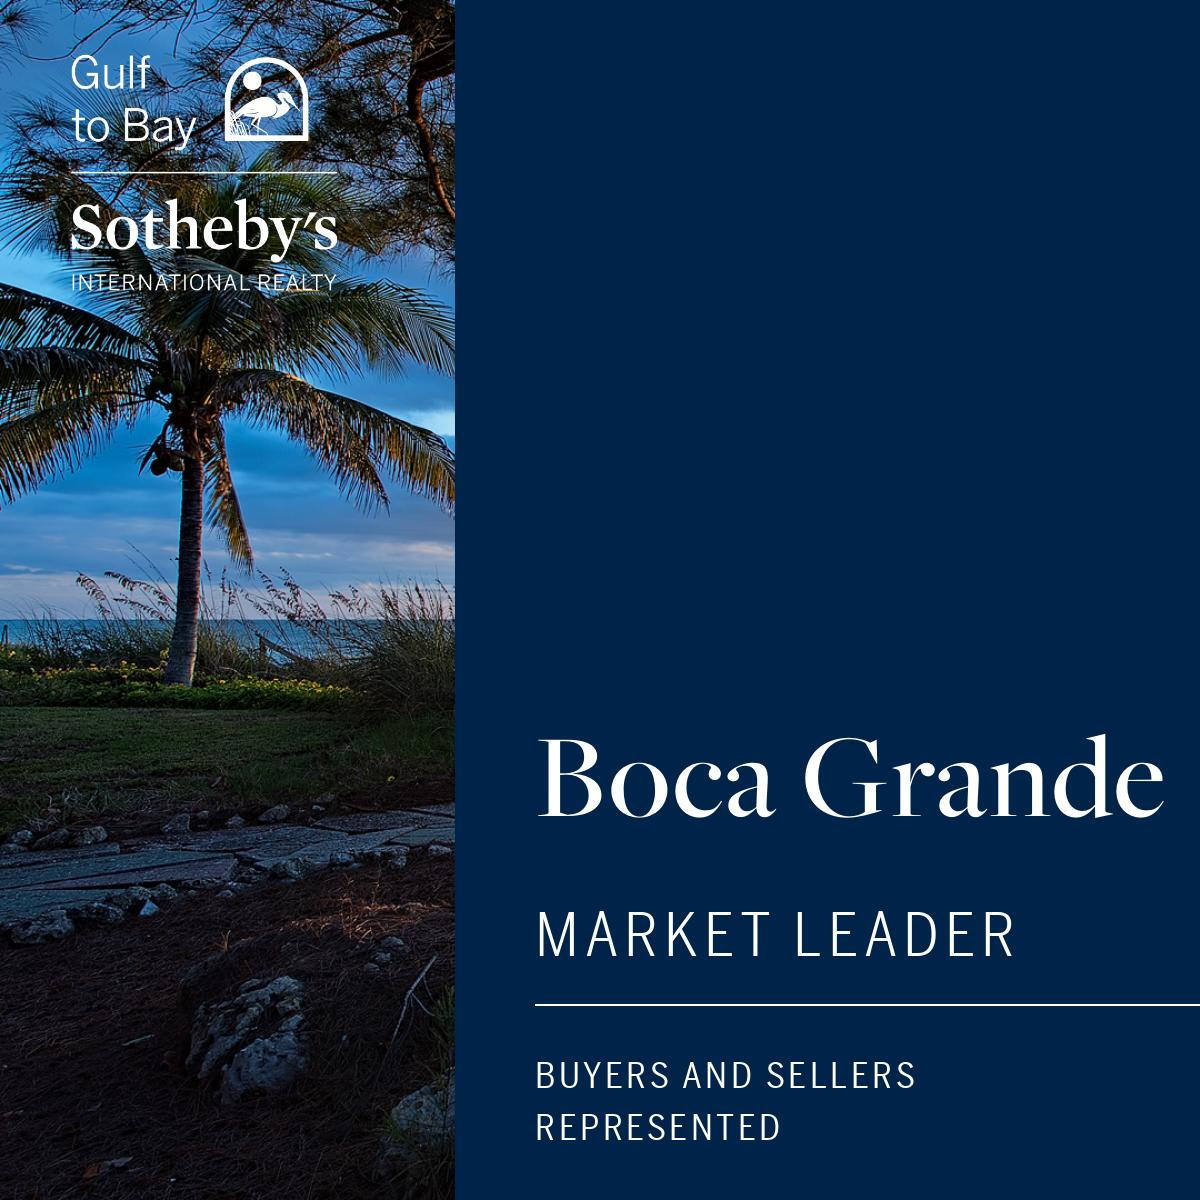 The Market Leaders in Boca Grande, FL